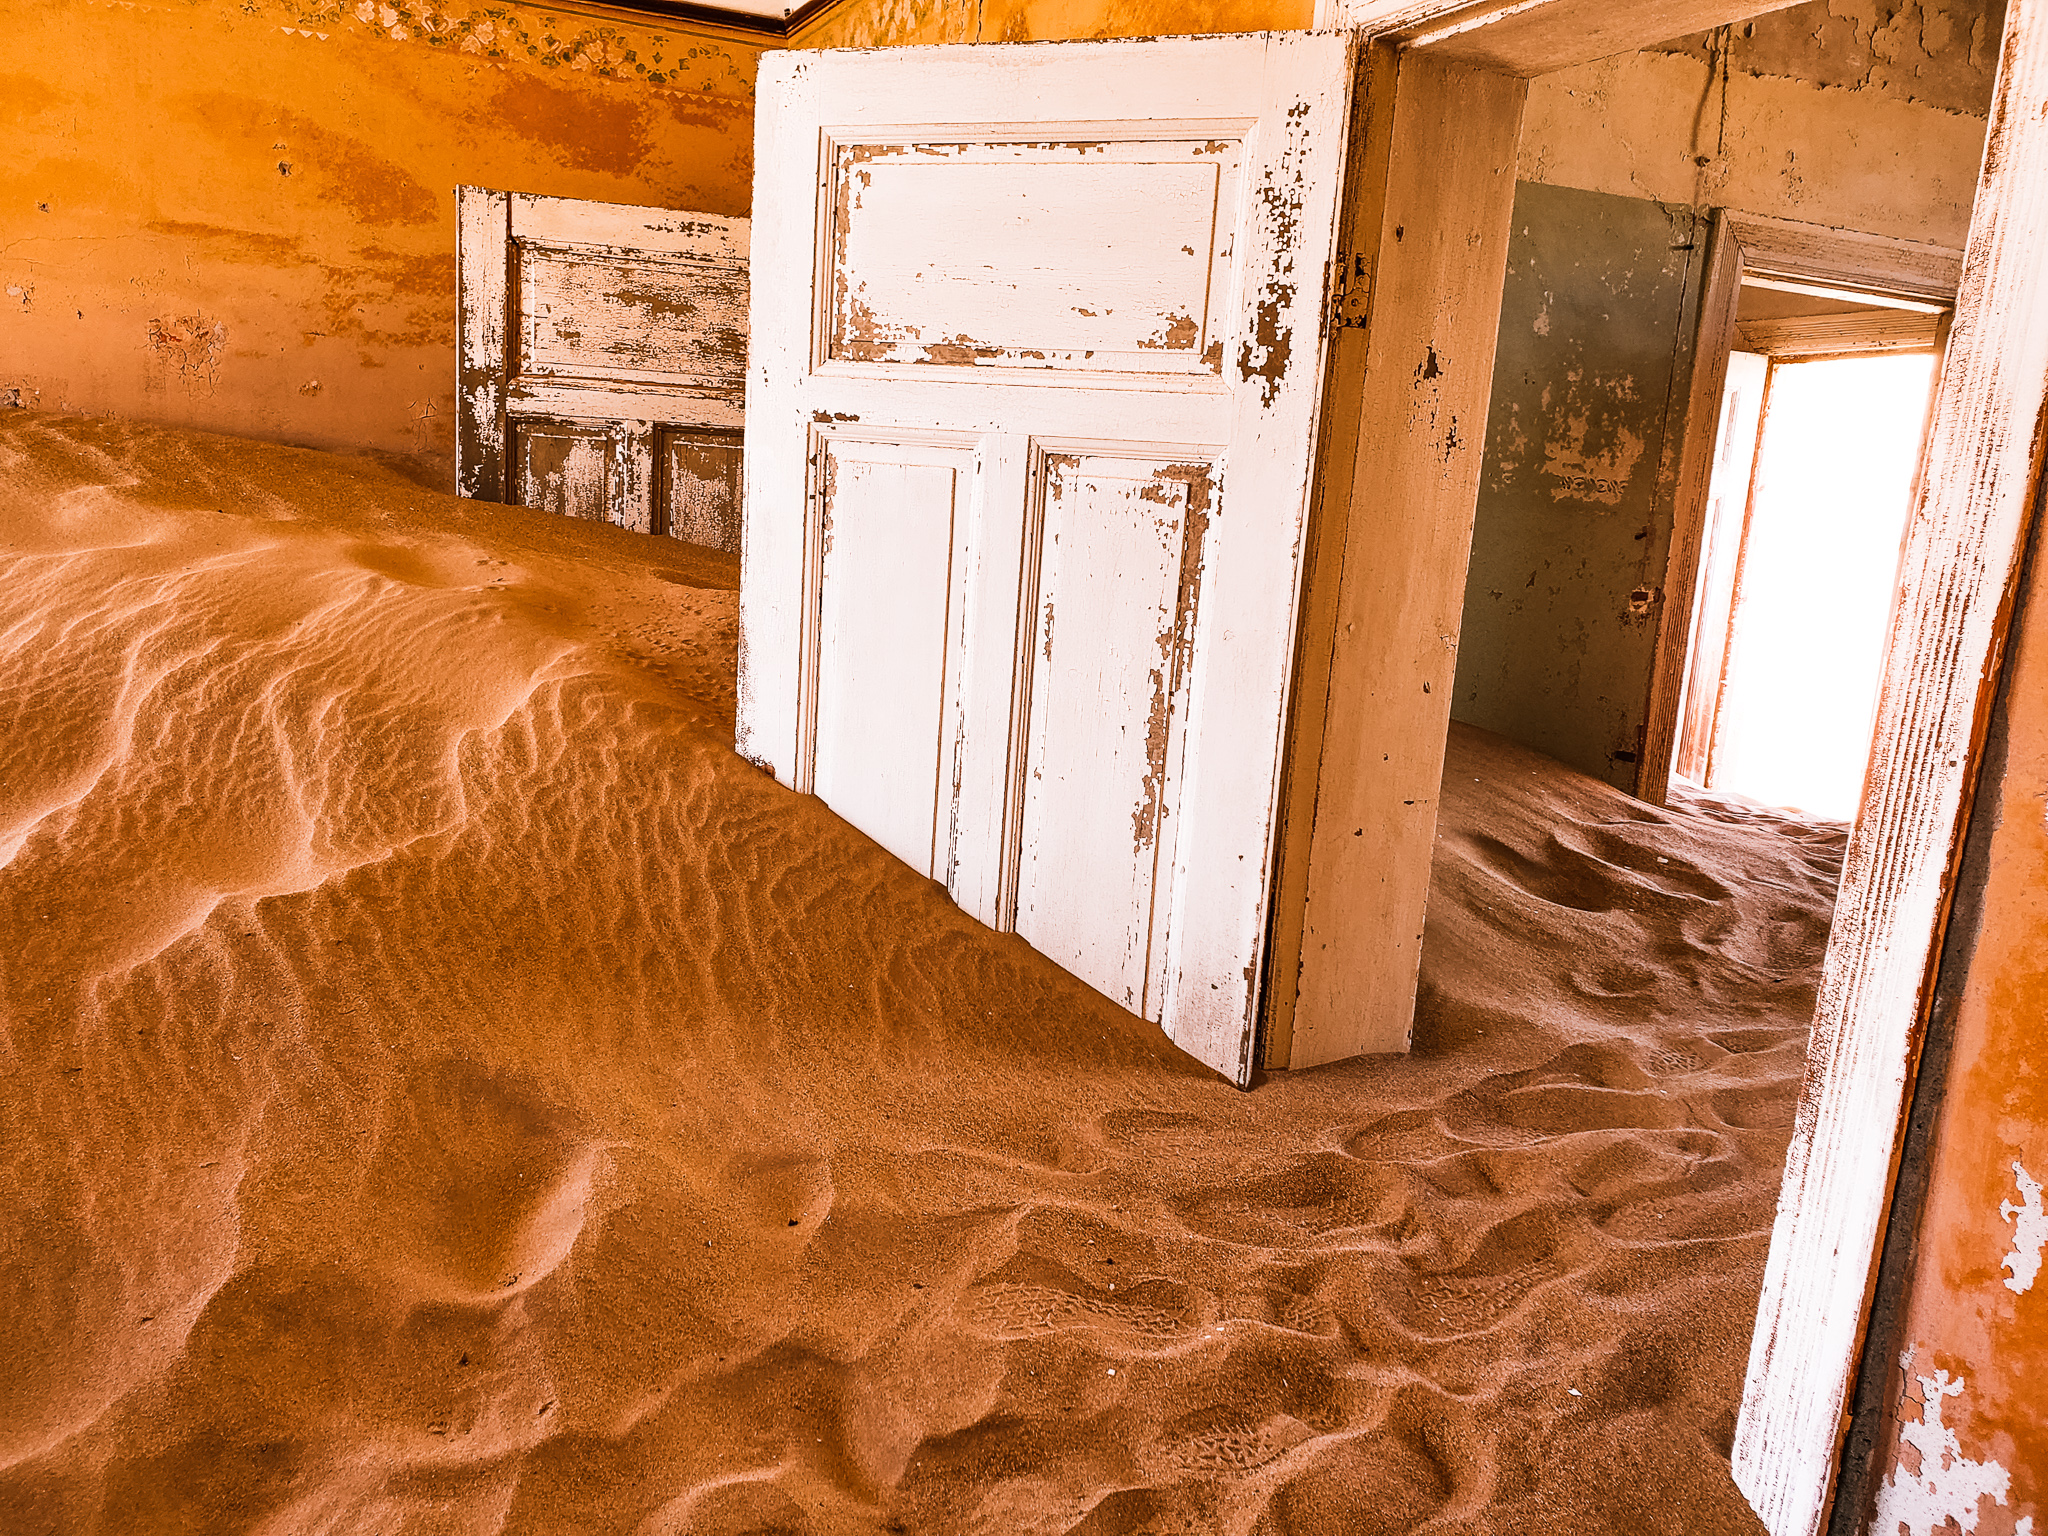 Kolmanskop inspires to take many photos